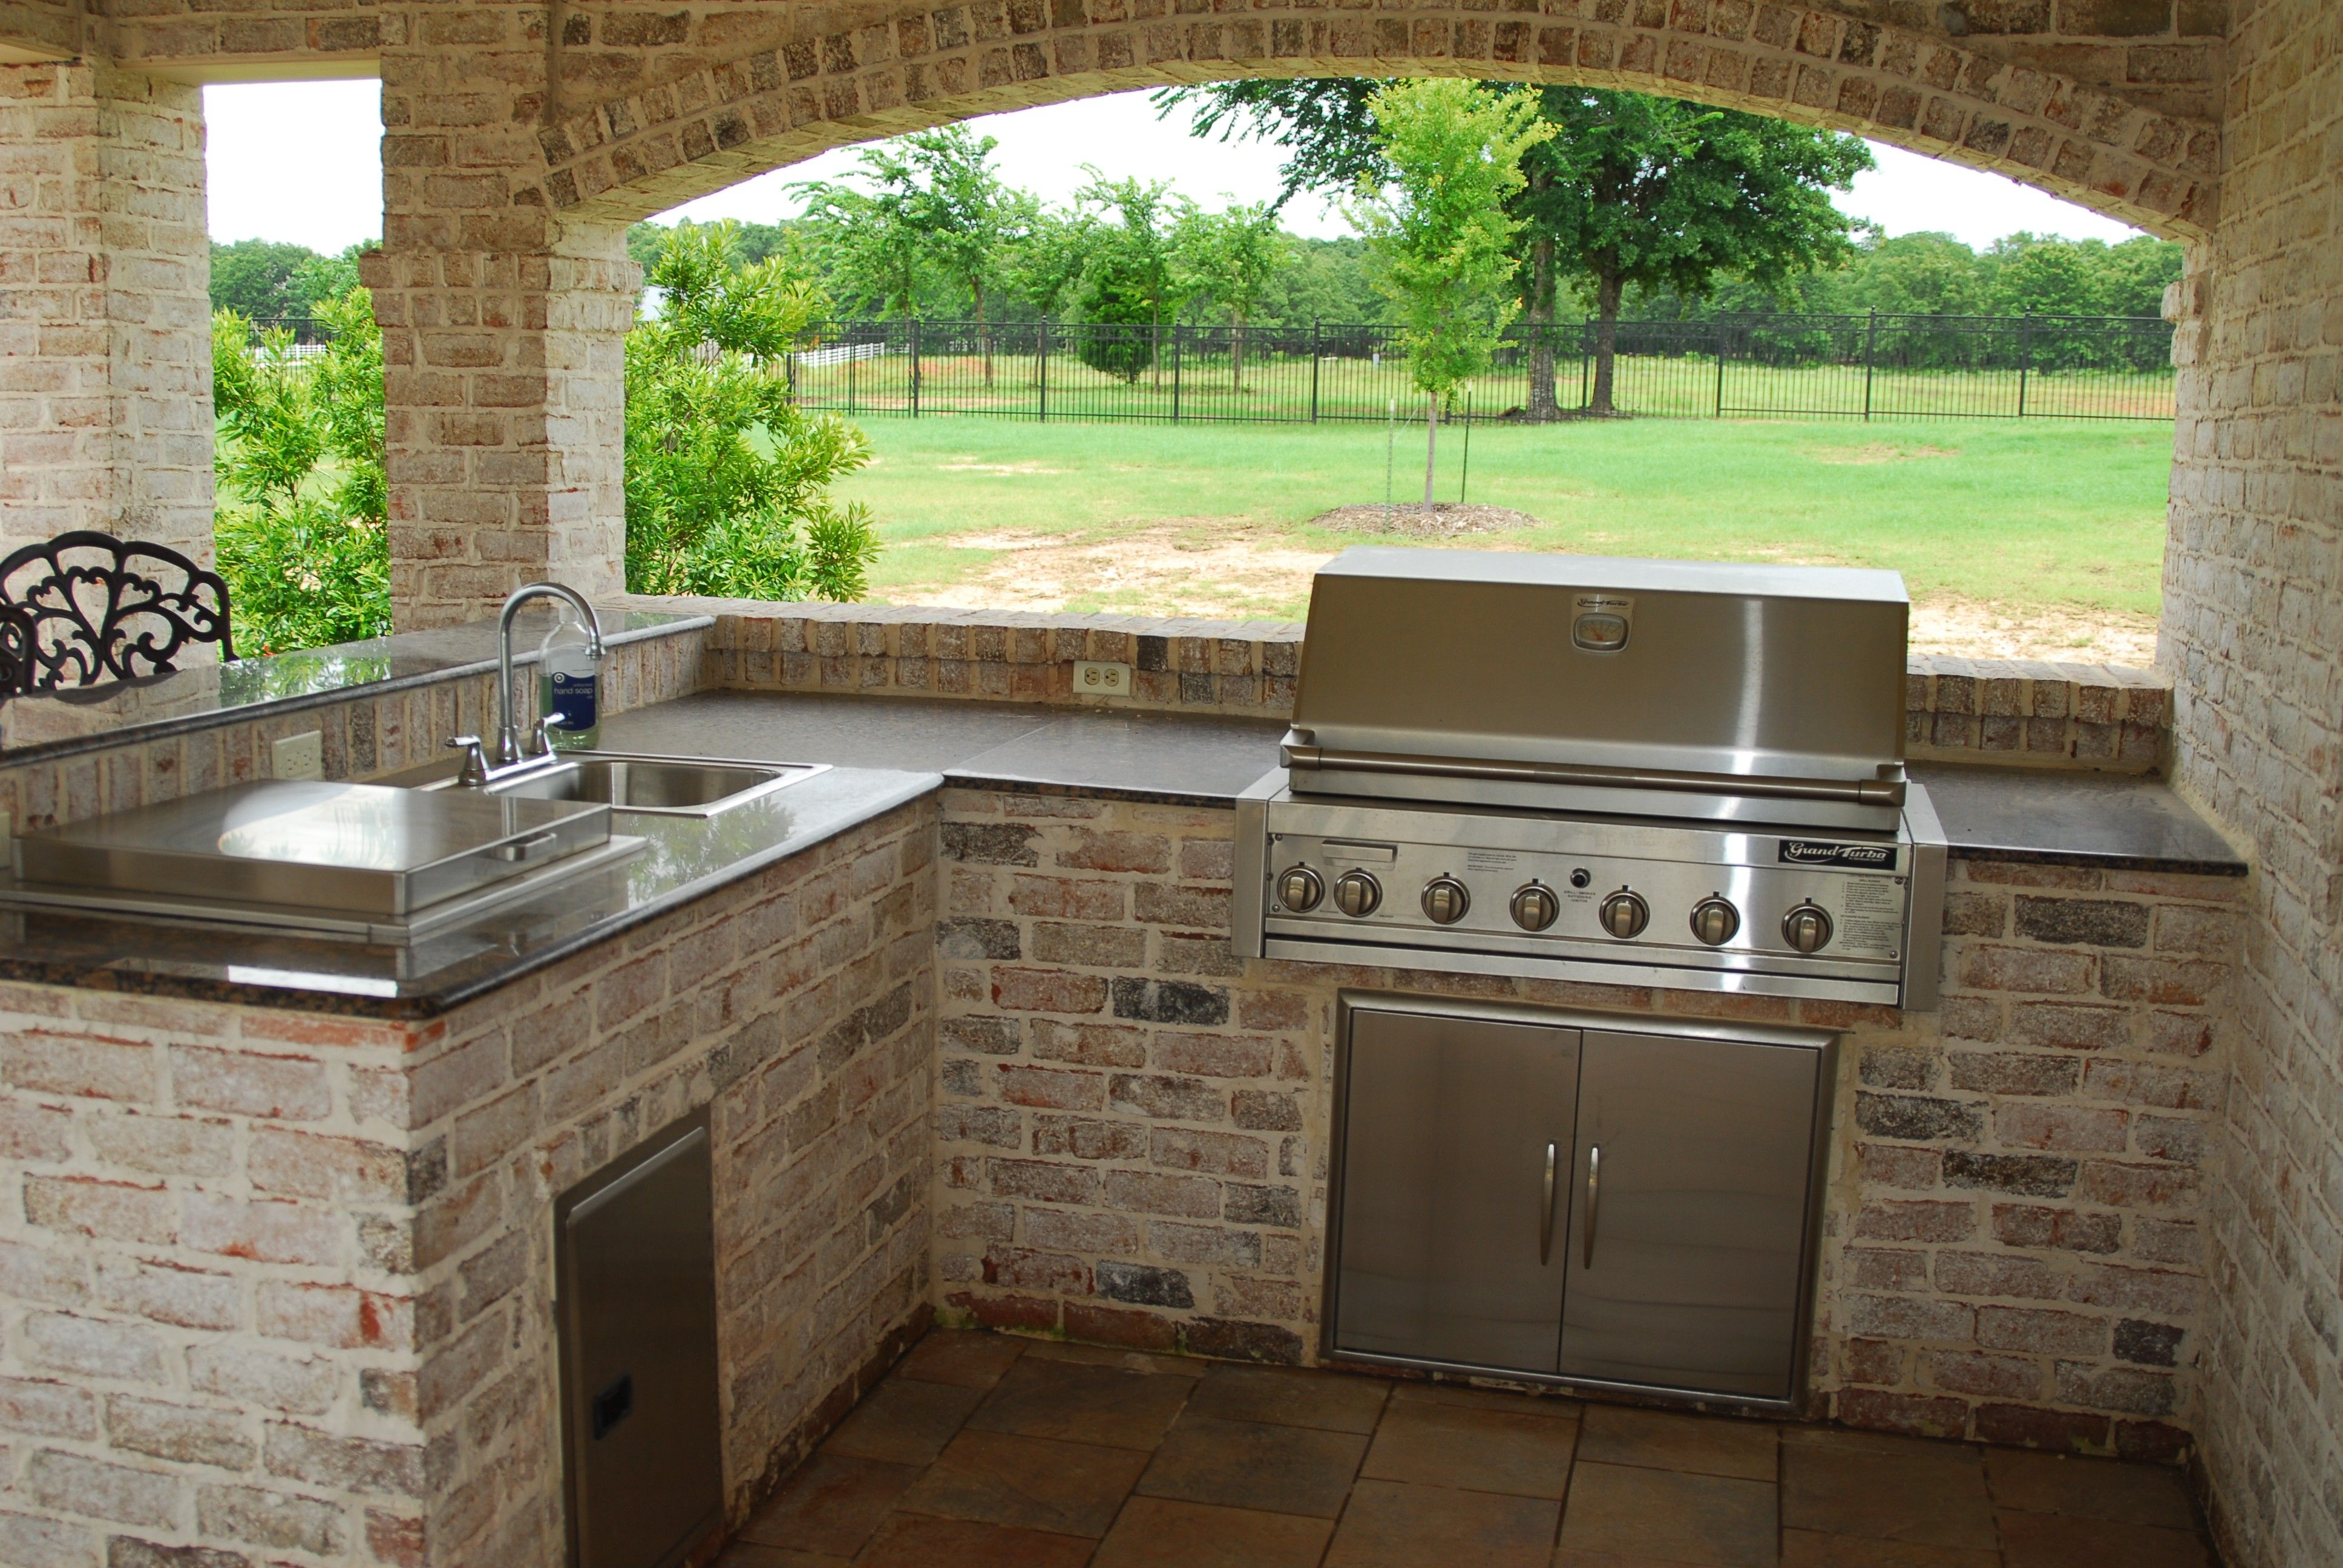 Contemporary Outdoor Kitchen Designs With Featuring Metal Chrome Conctruction Kitchen And Nat Outdoor Kitchen Plans Backyard Kitchen Outdoor Kitchen Appliances